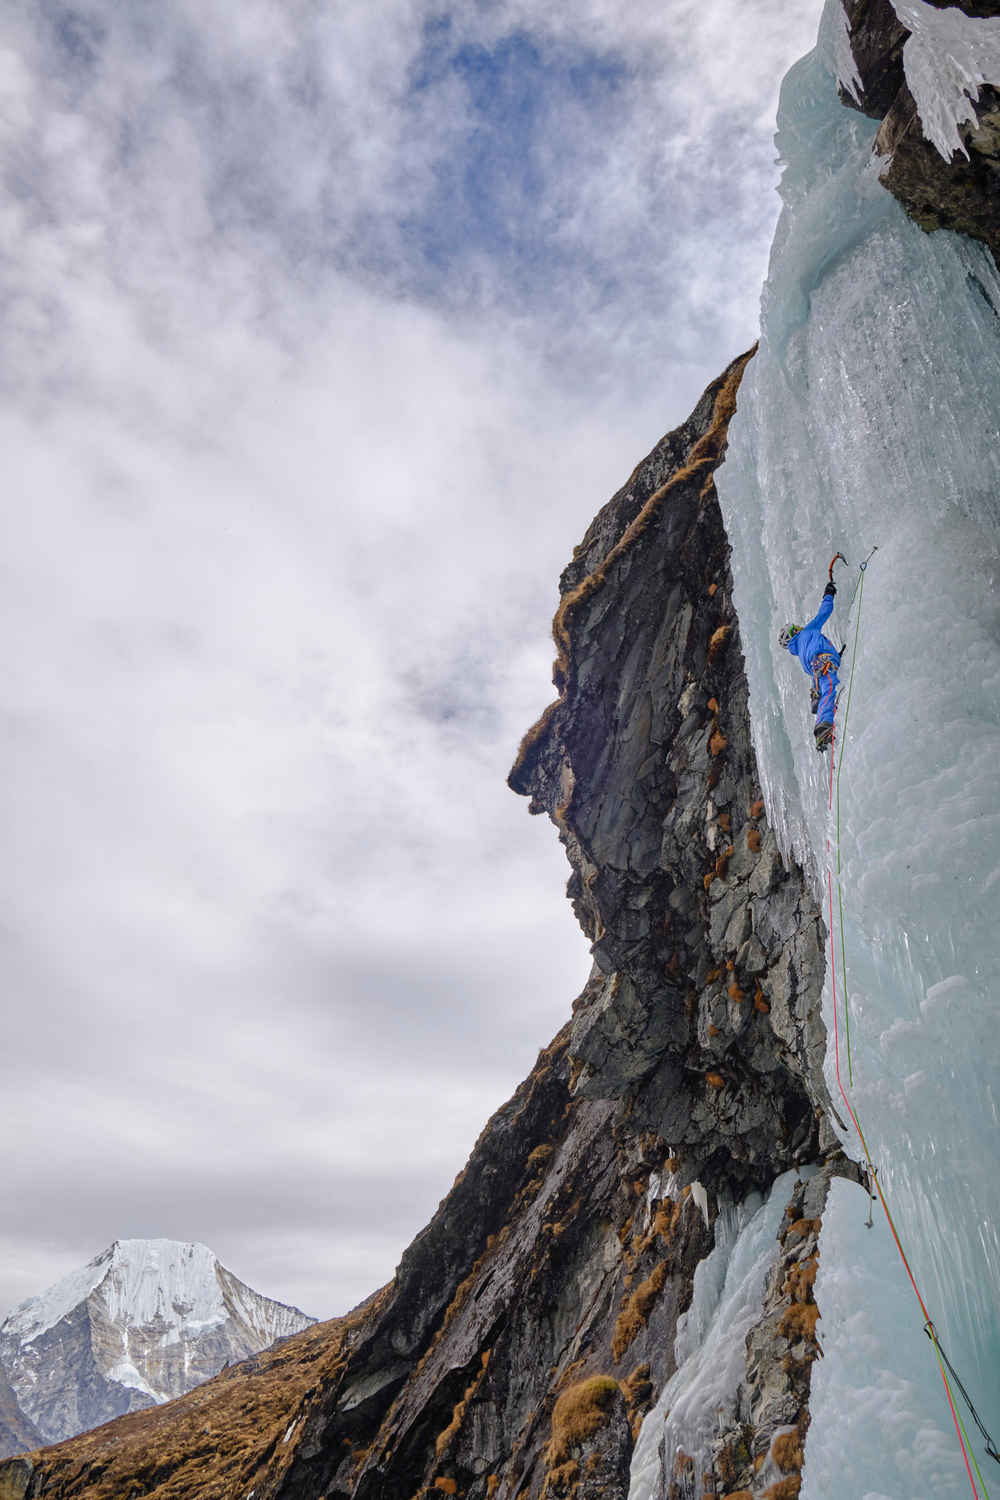 A climber ice climbing a frozen water fall.